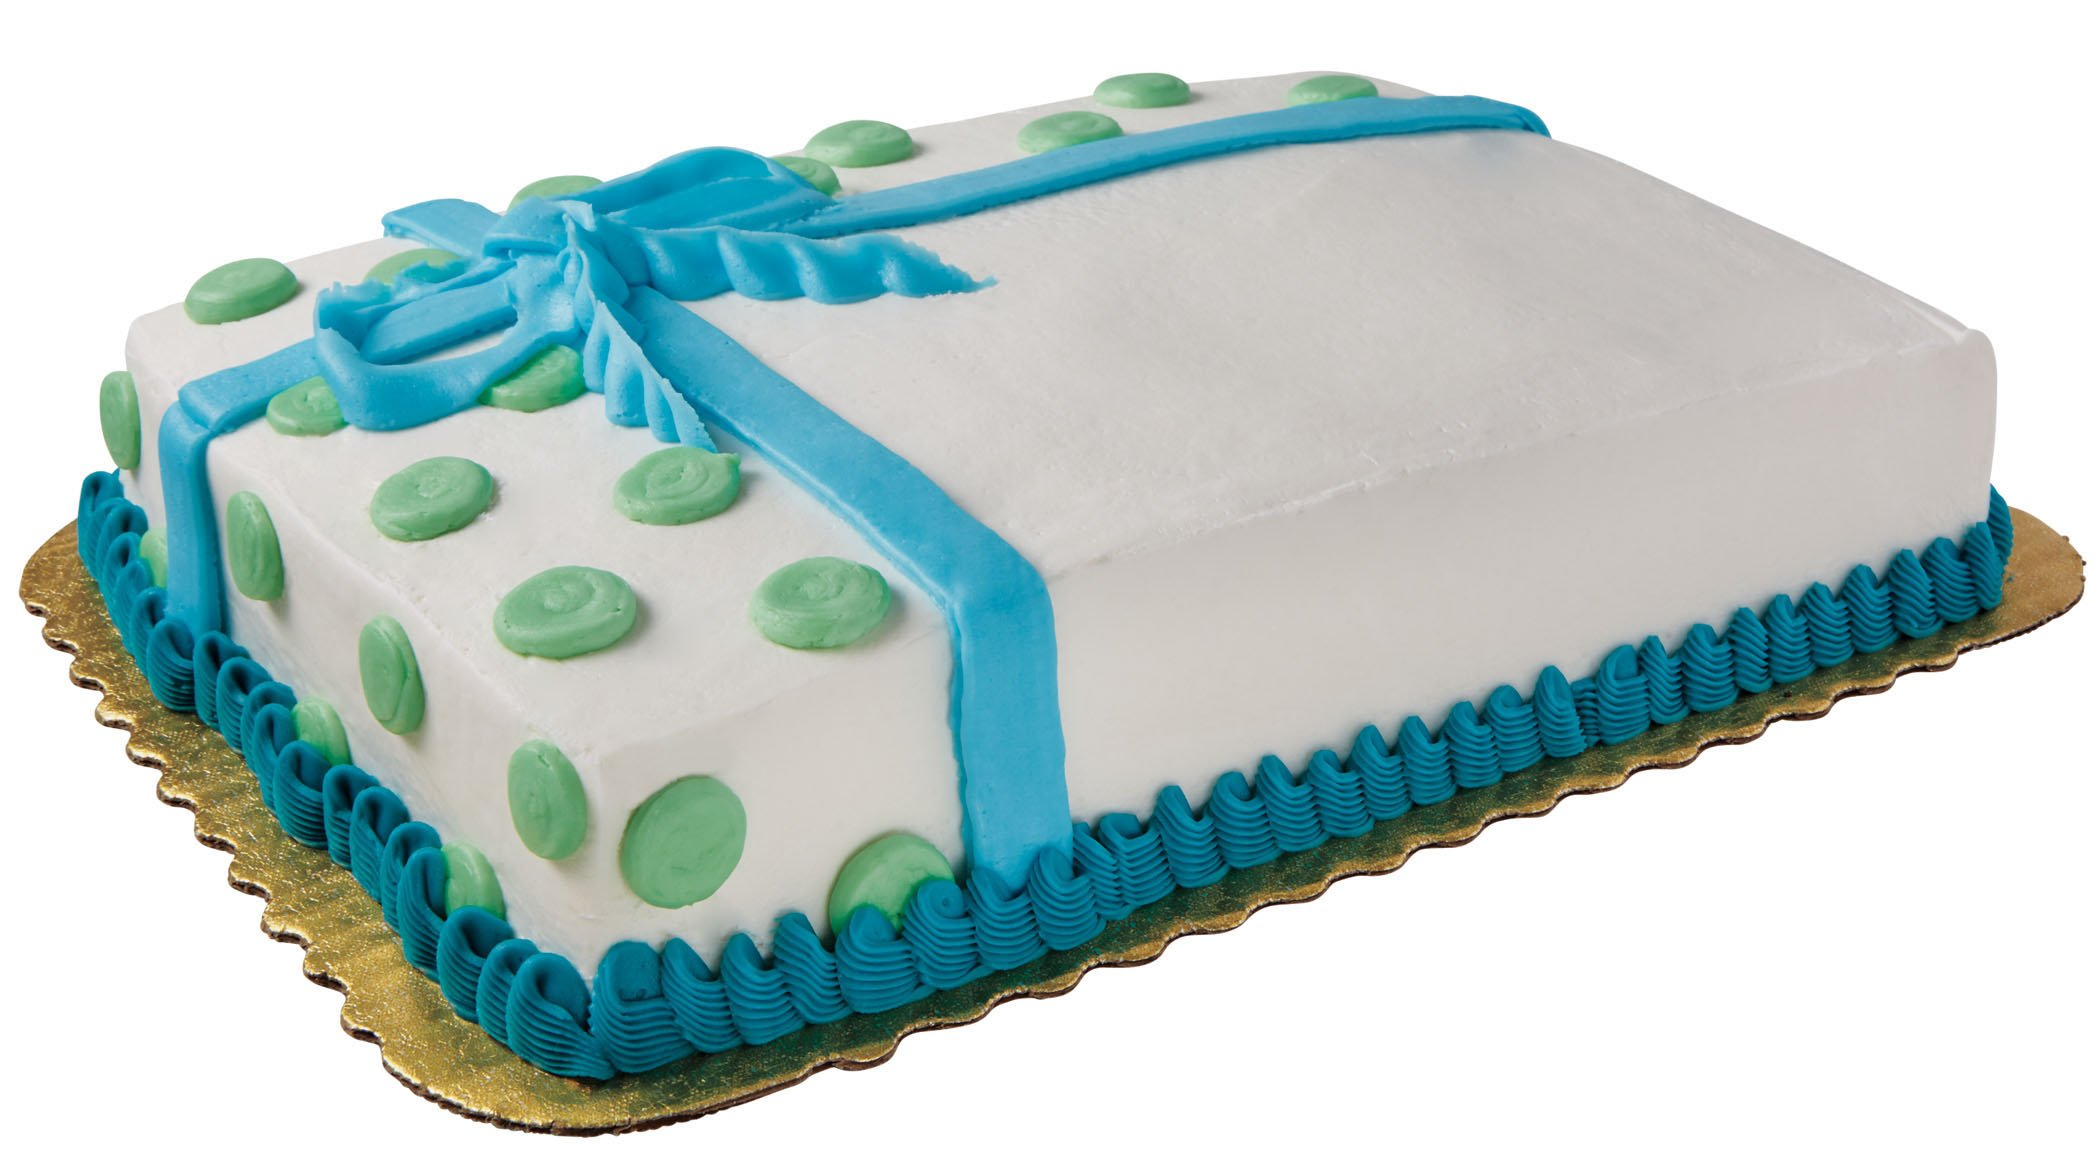 Custom cakes at heb order online pick up in store heb gift celebration cake negle Image collections